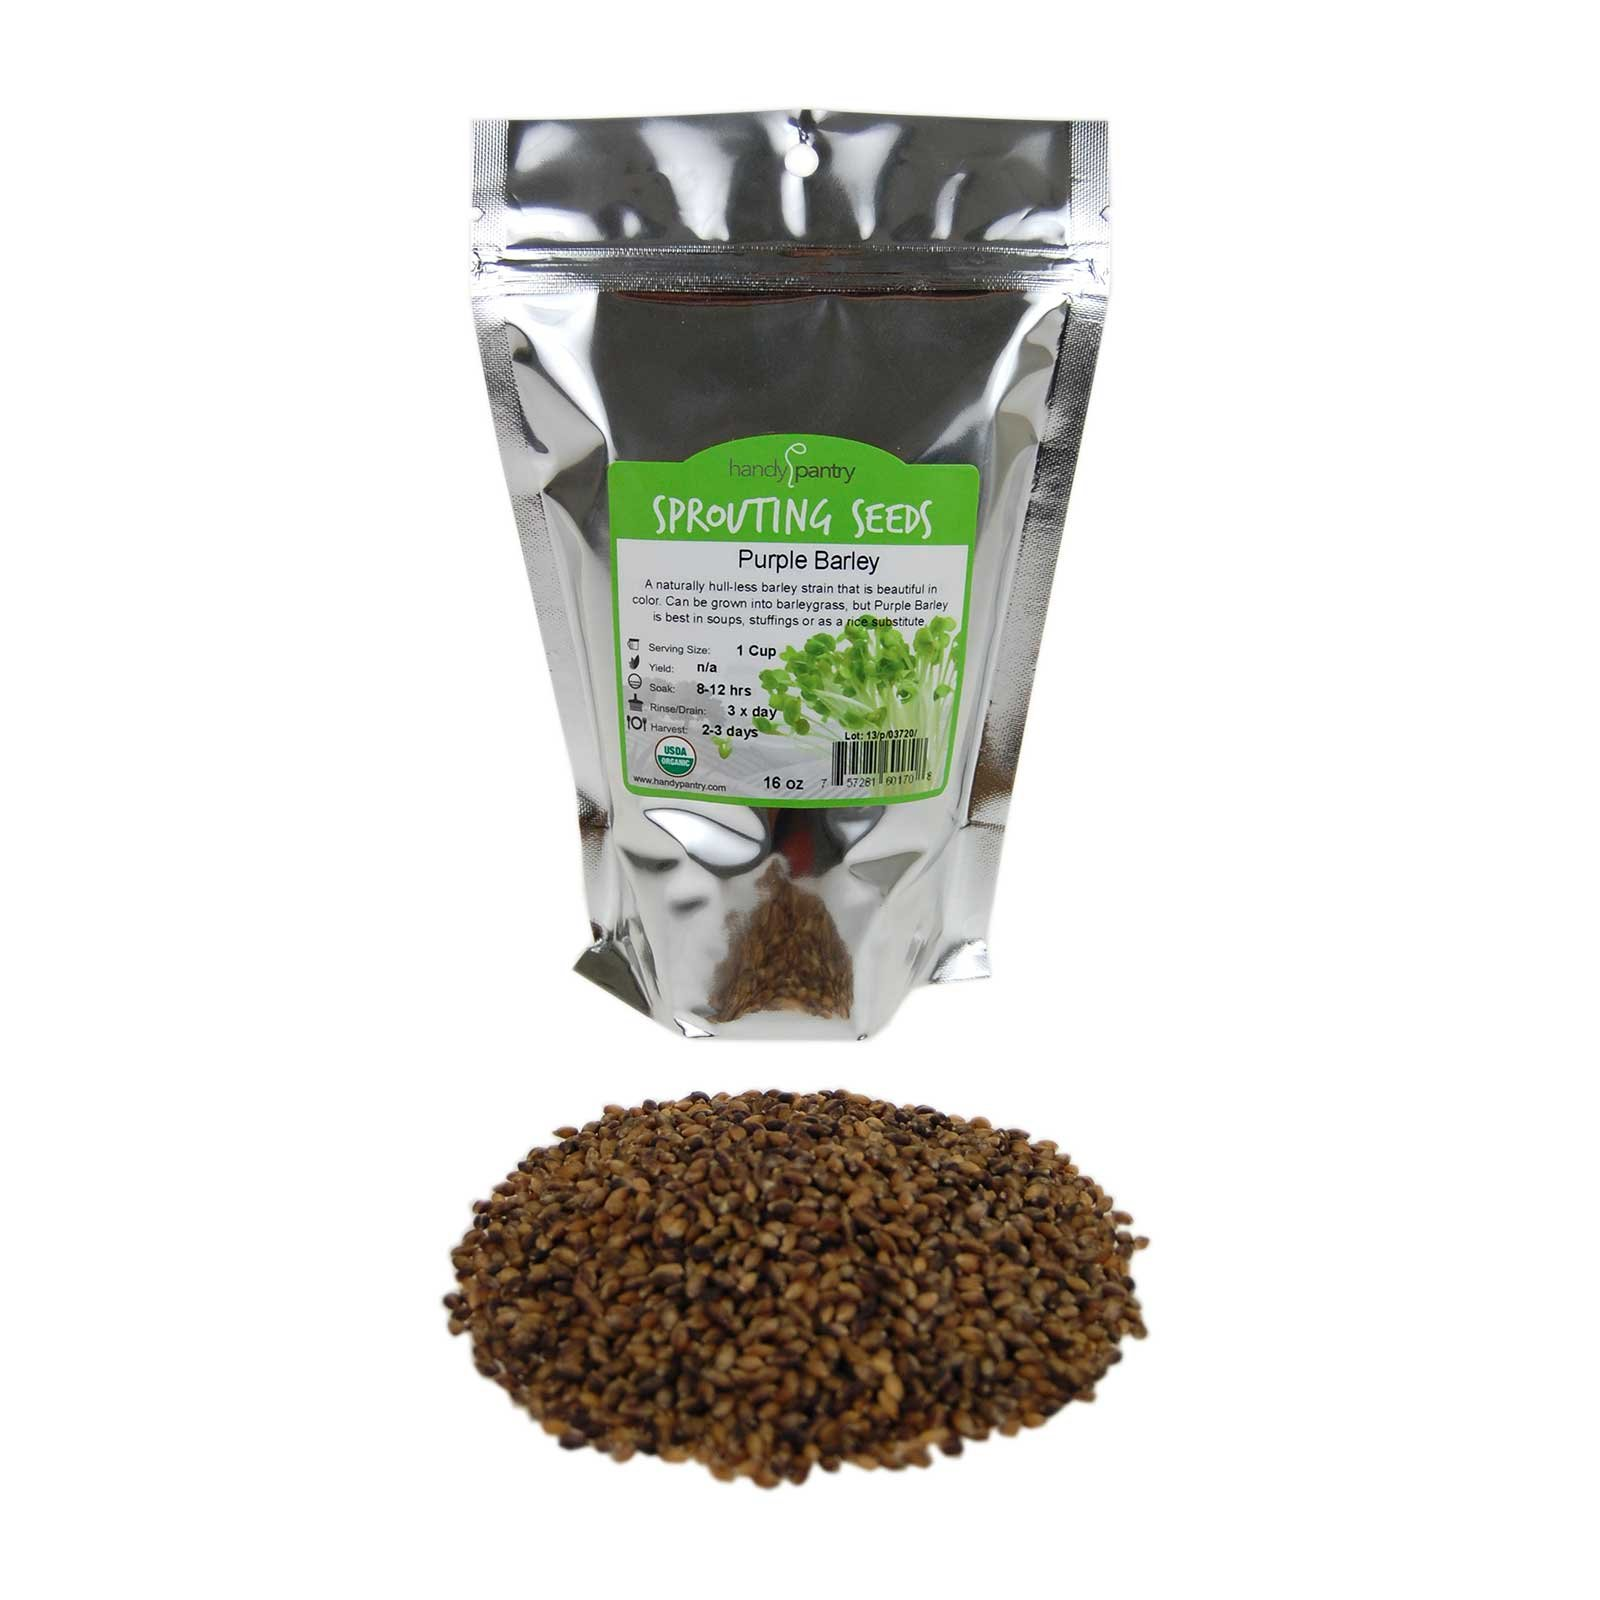 Purple Barley Seeds - Certified Organic - 1 Lb Resealable Pouch - Handy Pantry Brand - No Hull - For Barleygrass, Grind for Flour, Food Storage, Soups & More